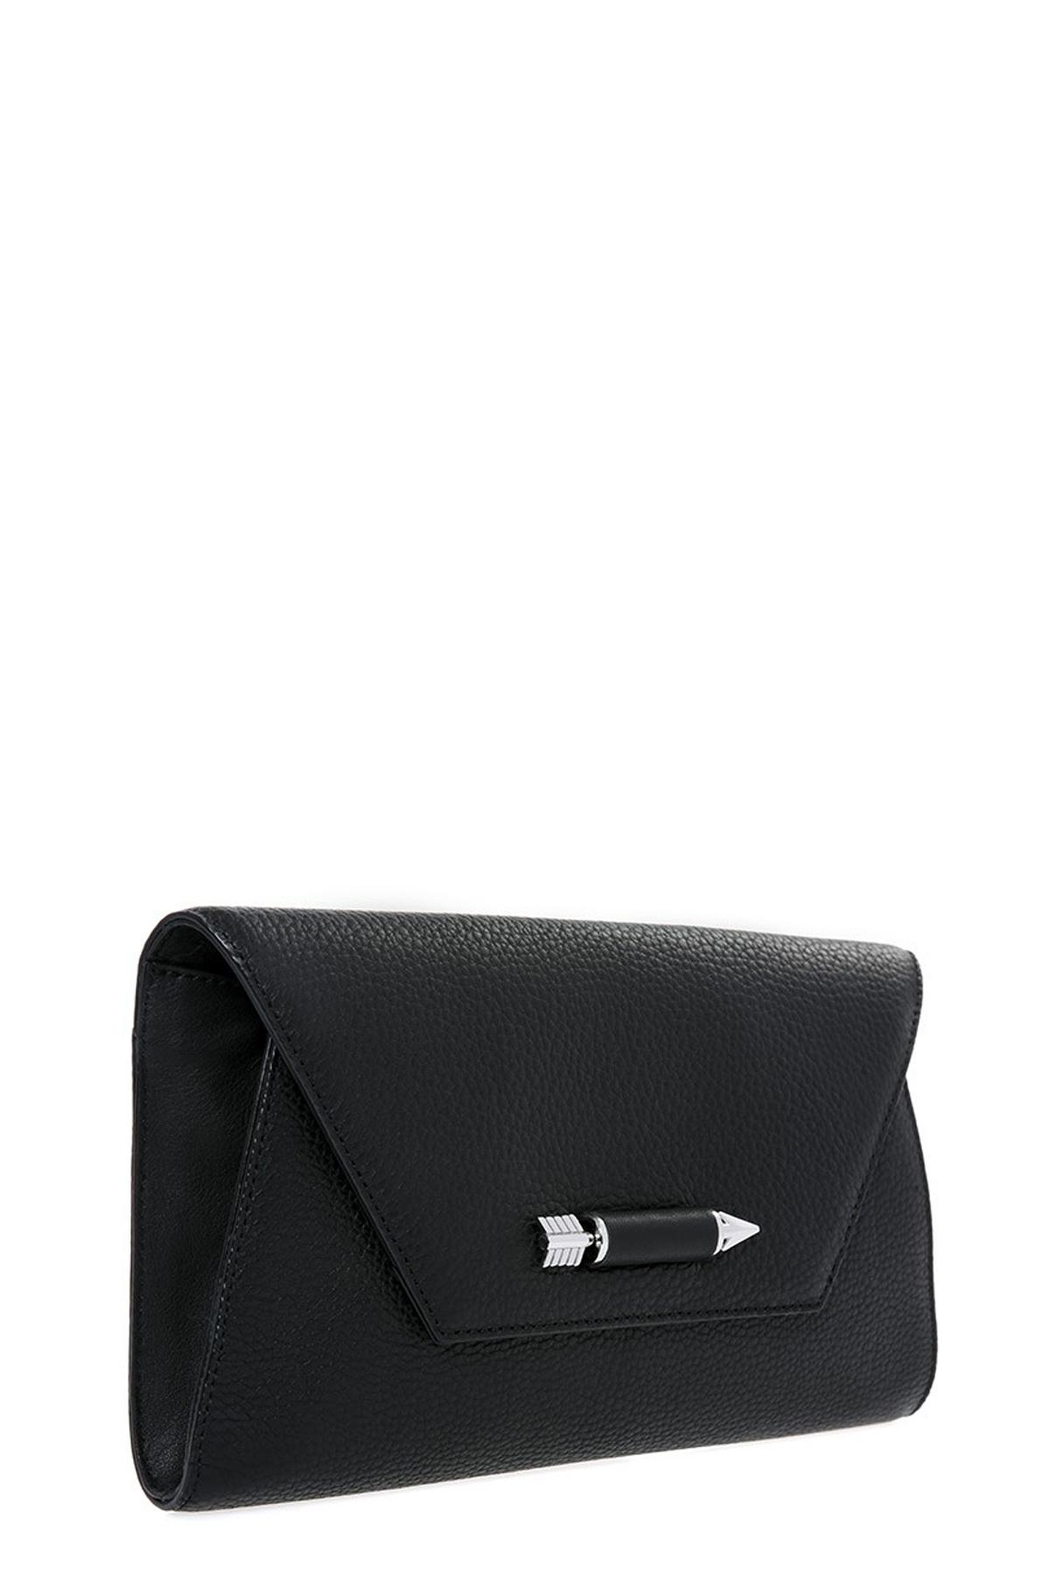 Mackage Flex Leather Clutch - Front Full Image